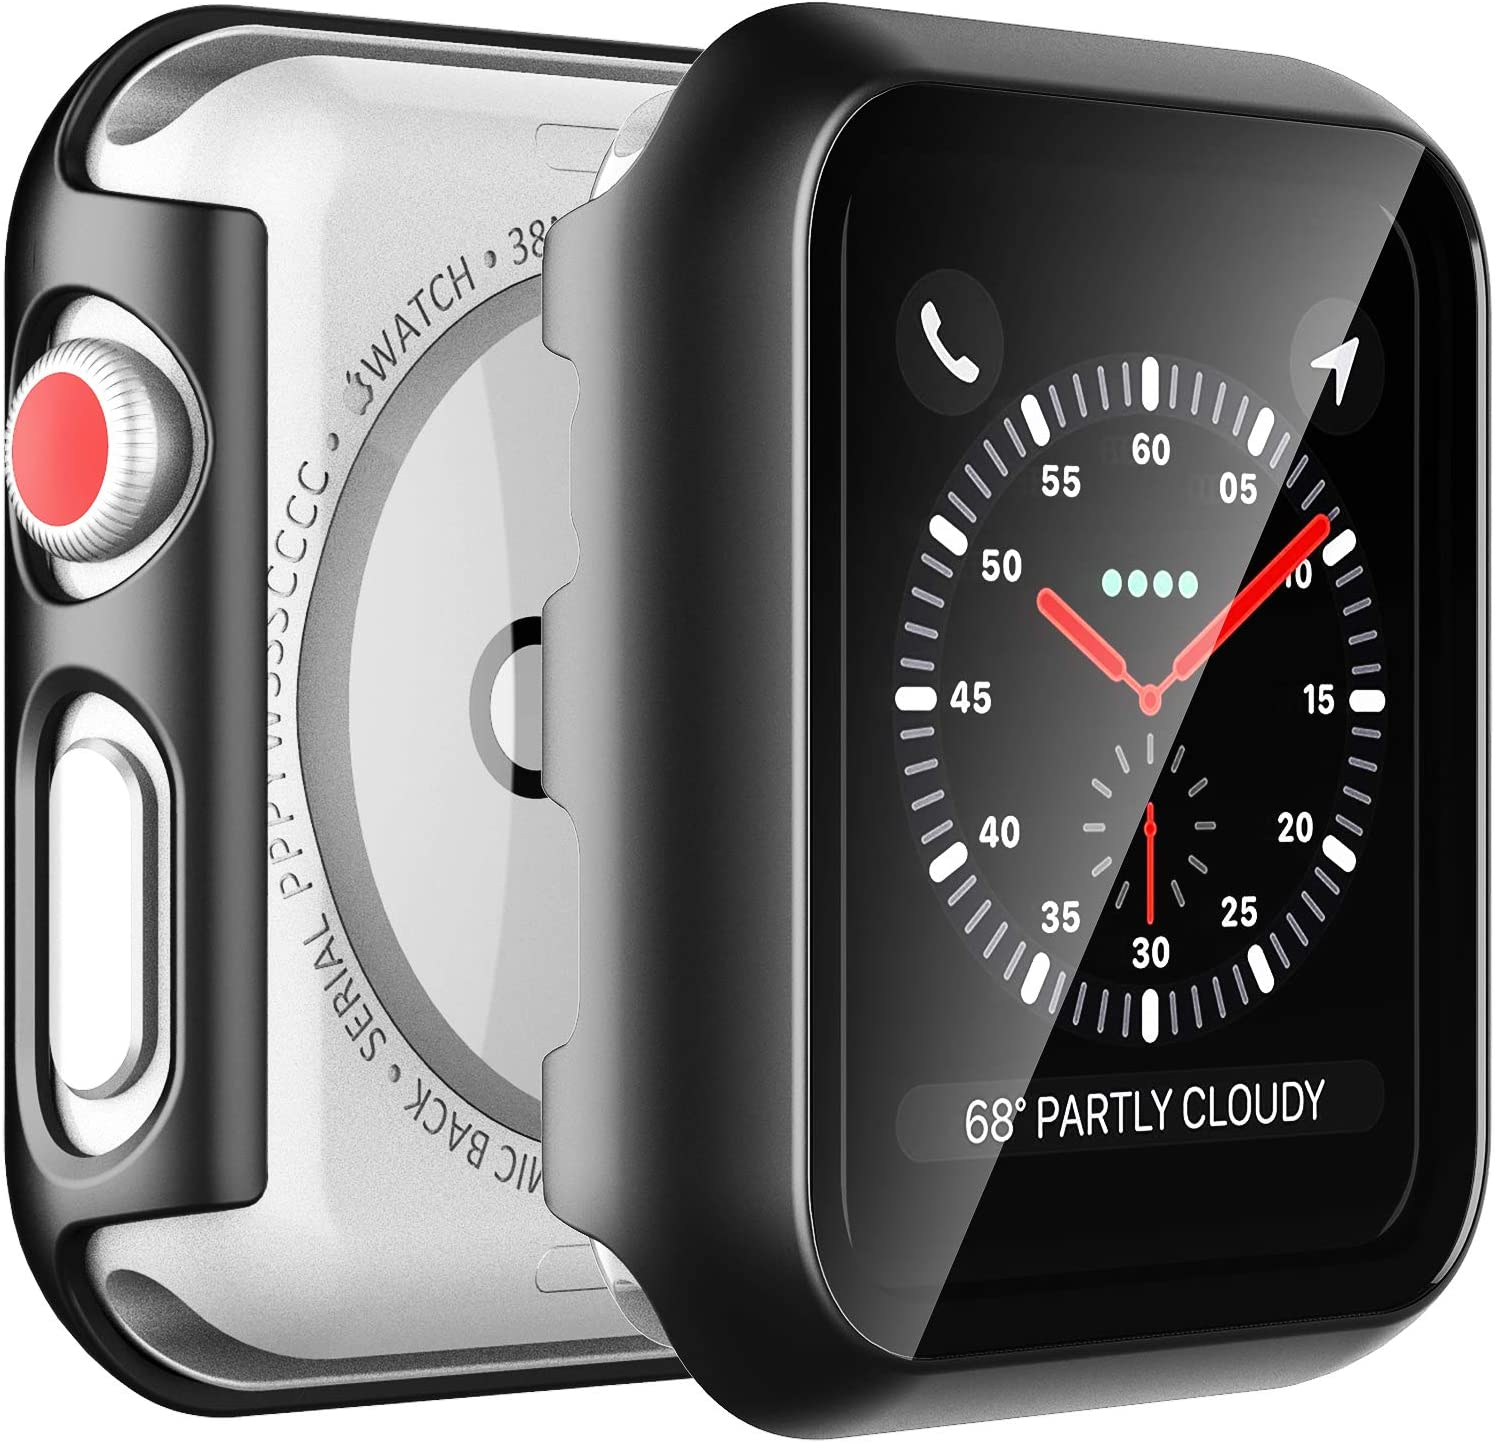 2 Pack LϟK Case for Apple Watch 42mm Series 3/2/1 Built-in Tempered Glass Screen Protector, All-Around Ultra-Thin Bumper Full Cover Hard PC Protective Case for iWatch 42MM - Black